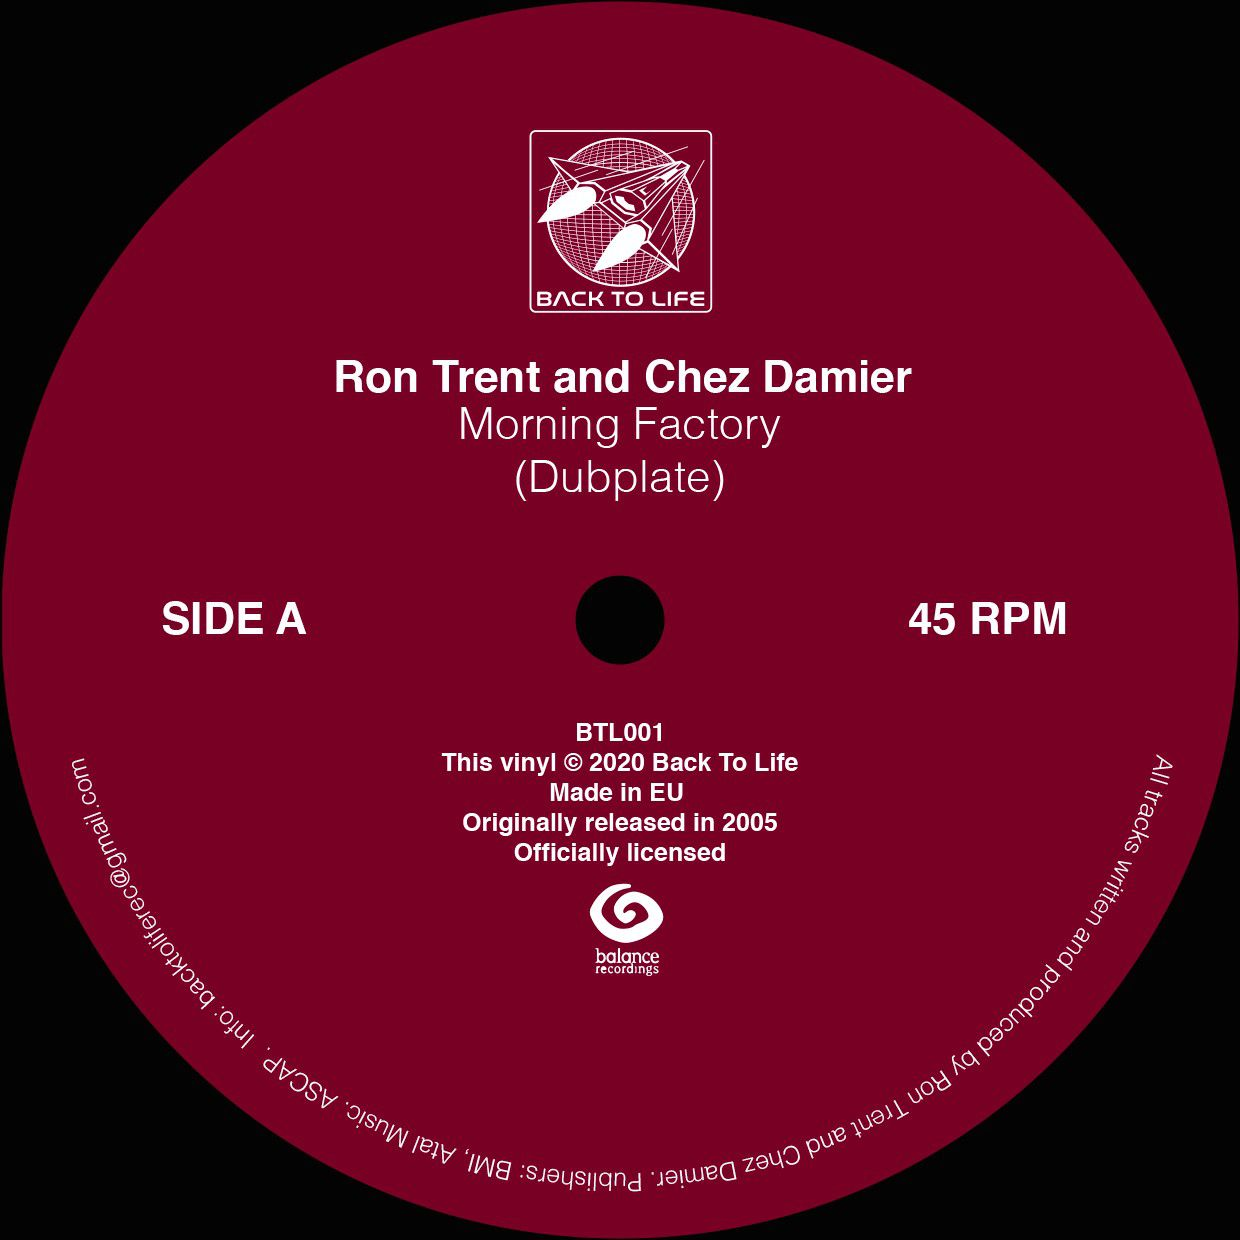 Ron Trent and Chez Damier - Morning Factory (Dubplate) Colored Vinyl